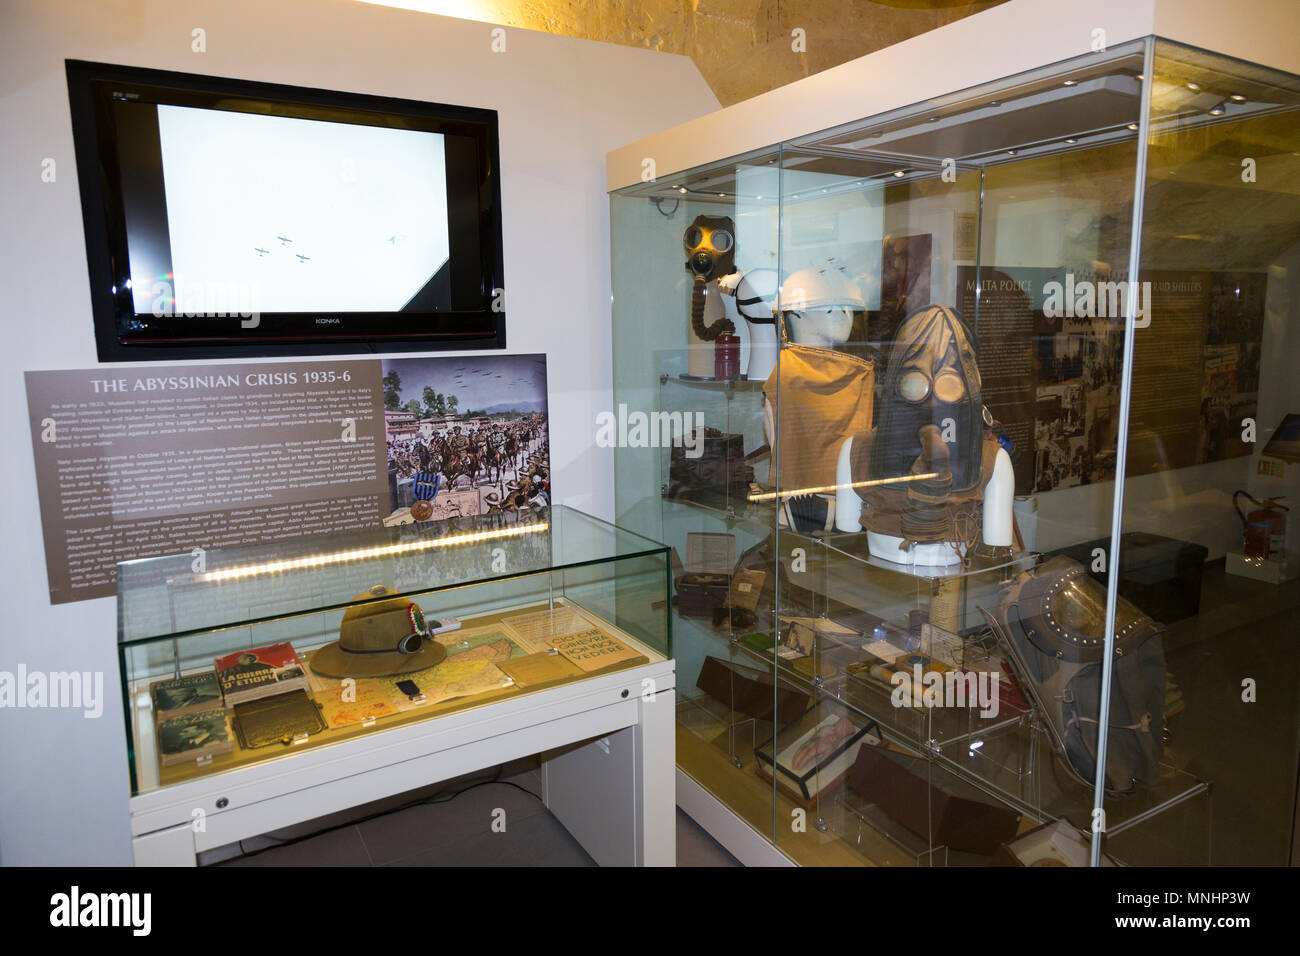 Exhibit / display of exhibits inside room in the exhibition displayed at The Malta At War Museum, Malta. (91) - Stock Image